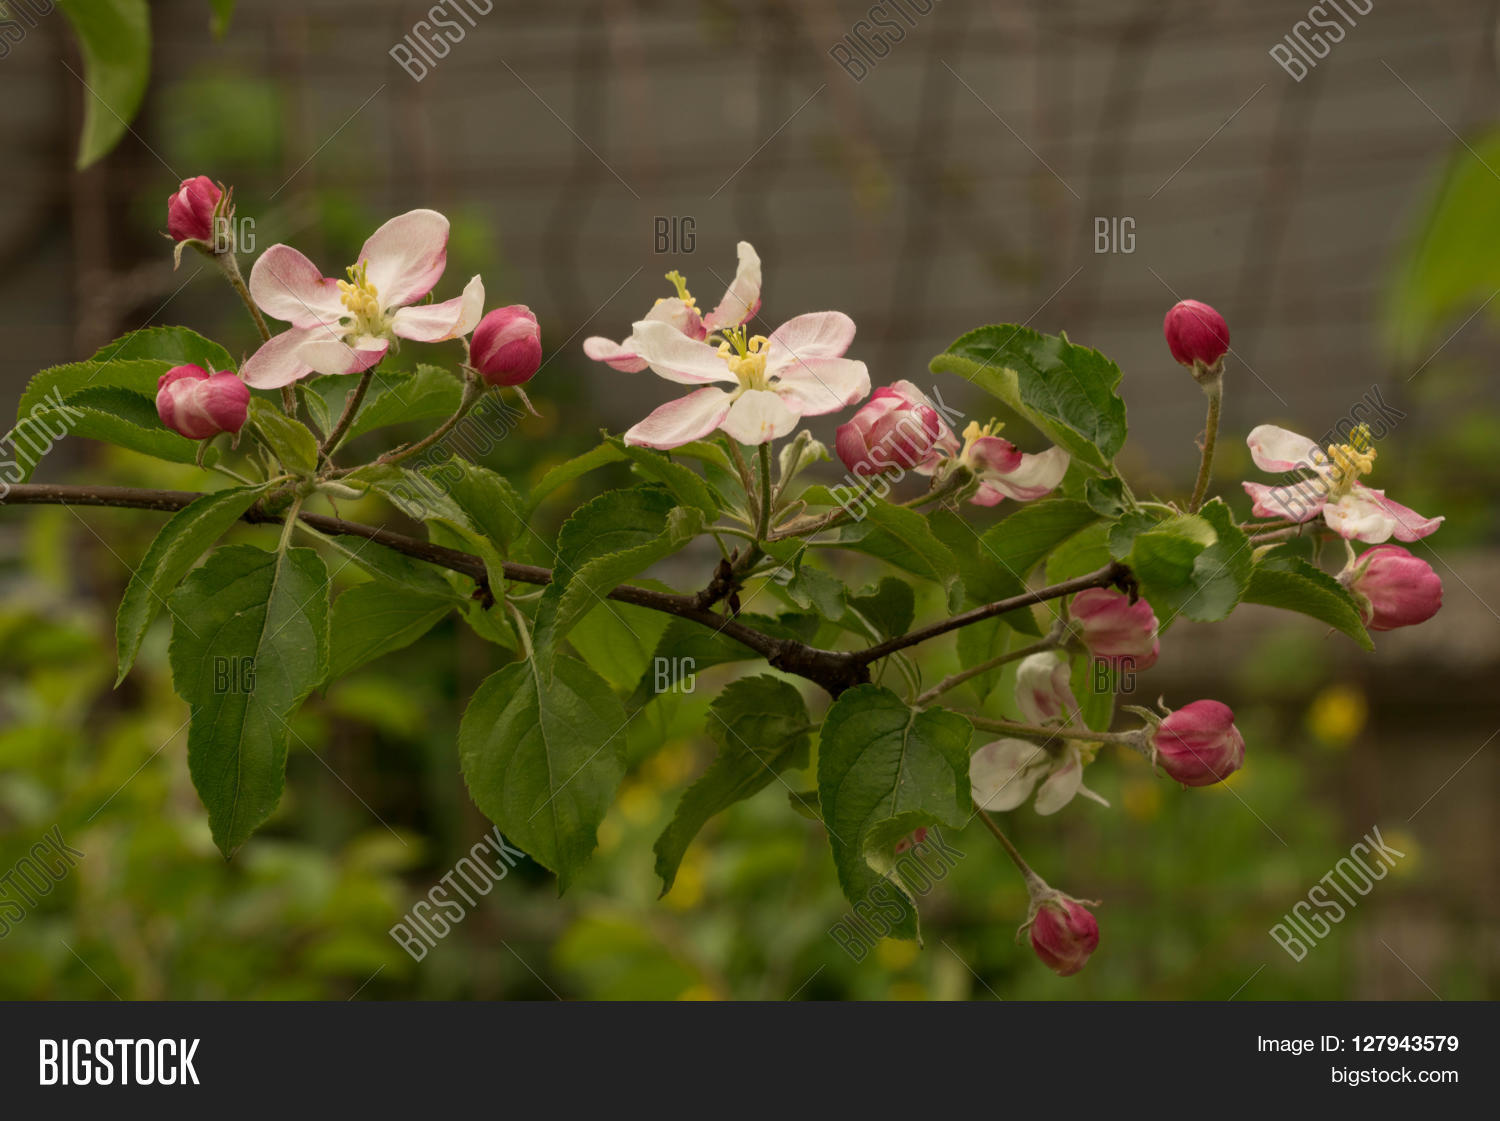 Apple Trees In Bloom The Branches Of